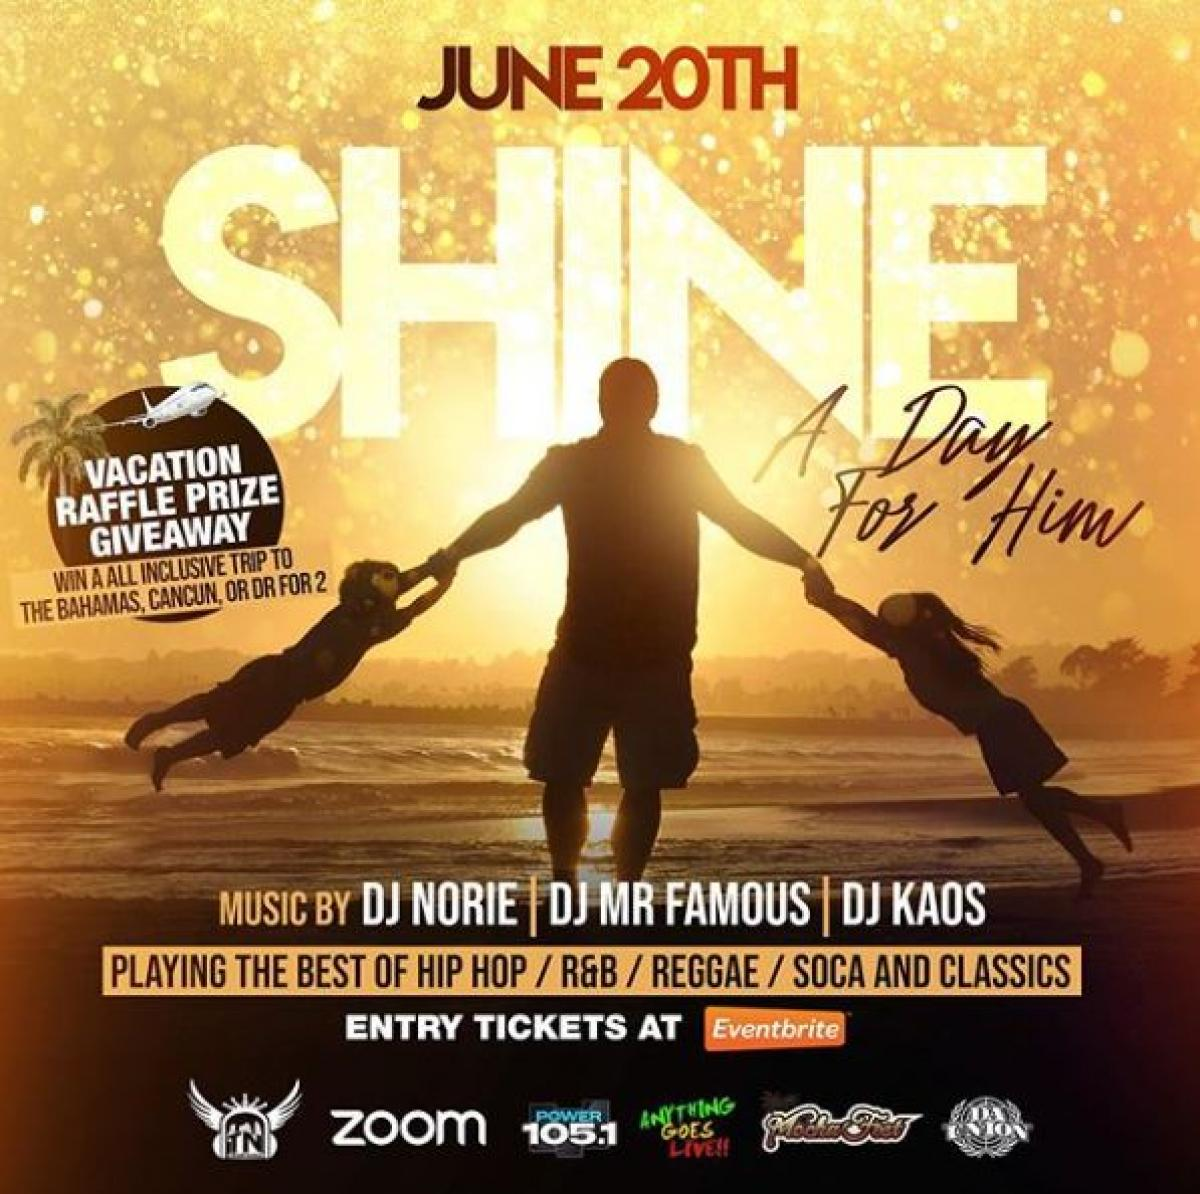 Shine- A Day For Him flyer or graphic.